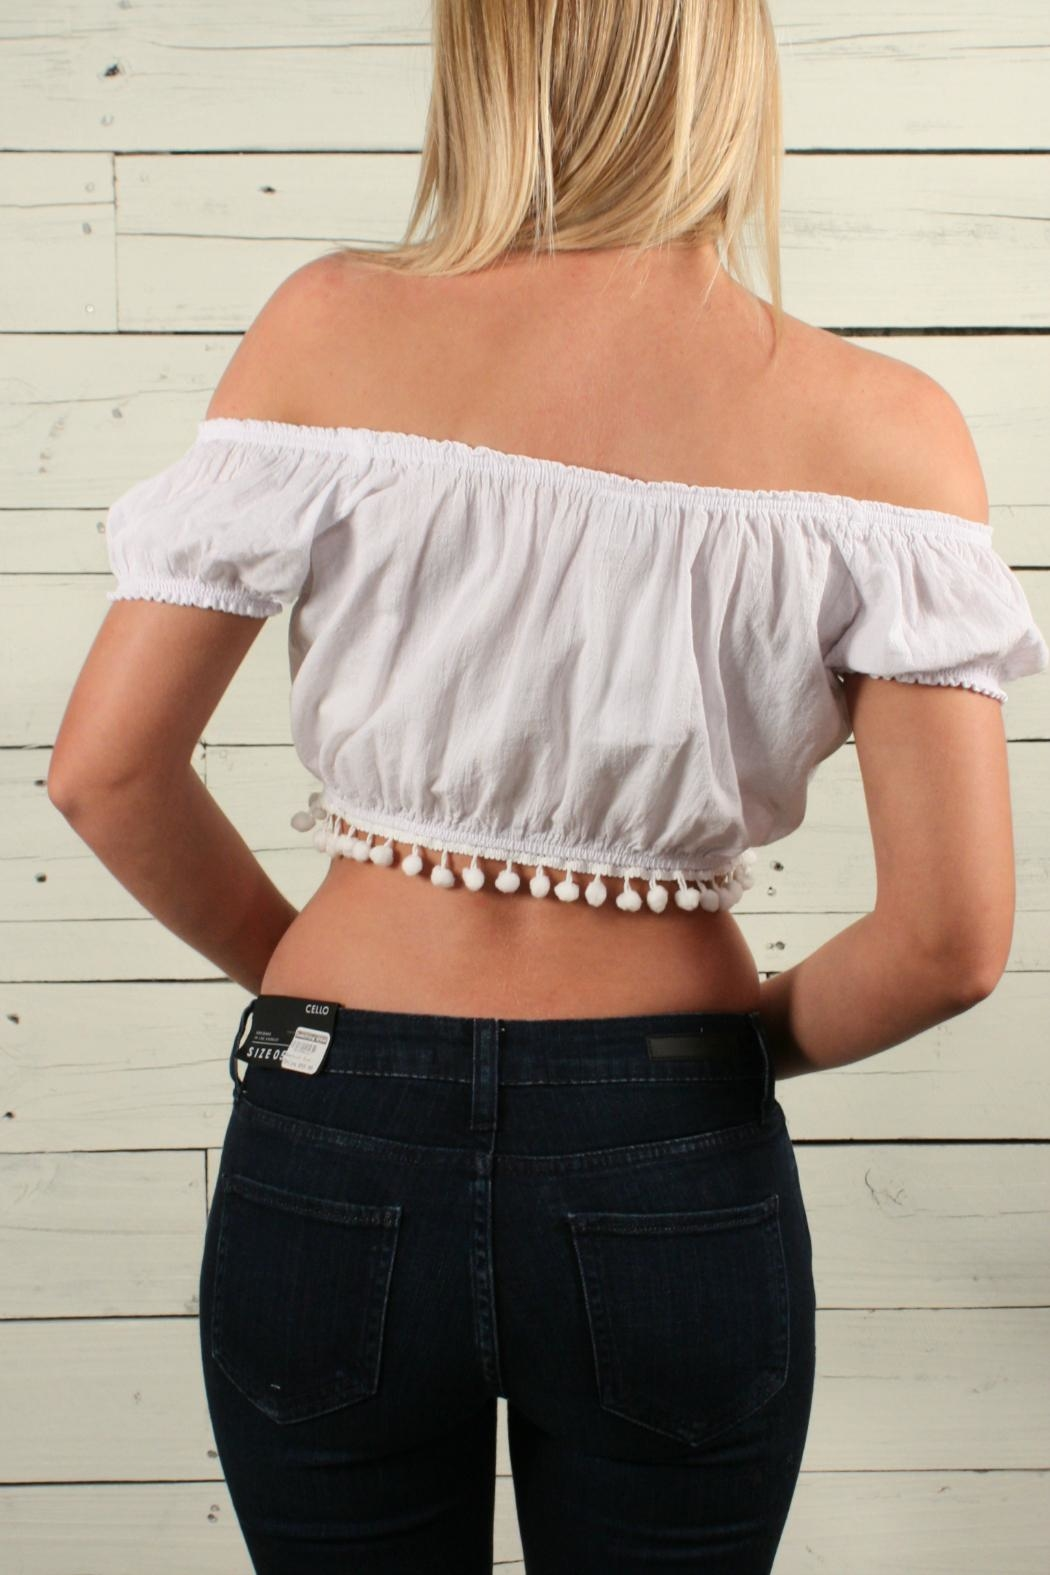 9dda7ba2ee3 Giocam White Pearl Crop Top from Fayetteville by Something Urban ...